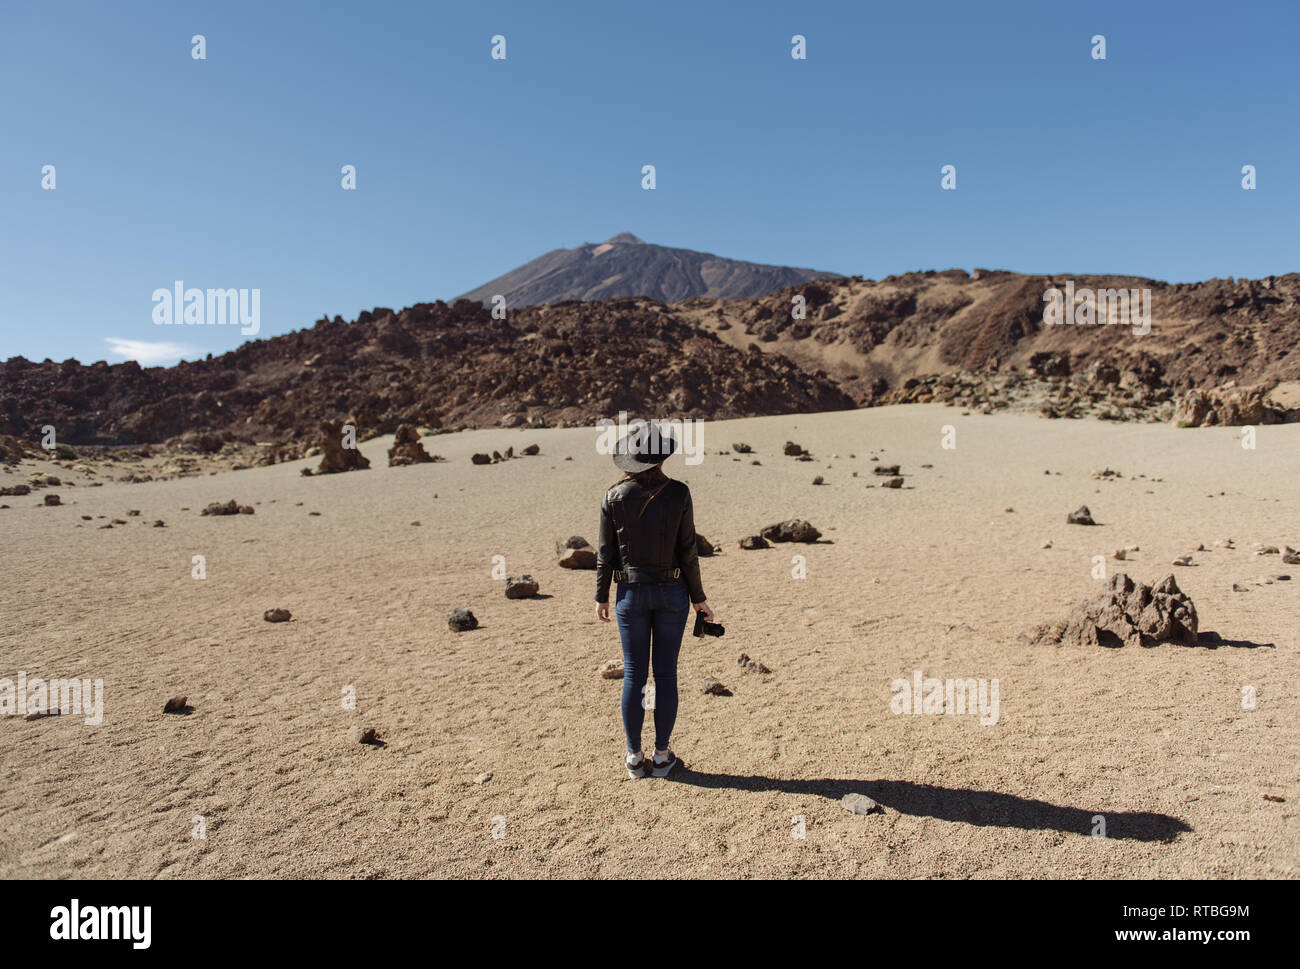 Back view of female photographer standing with camera and looking at hills in desert - Stock Image